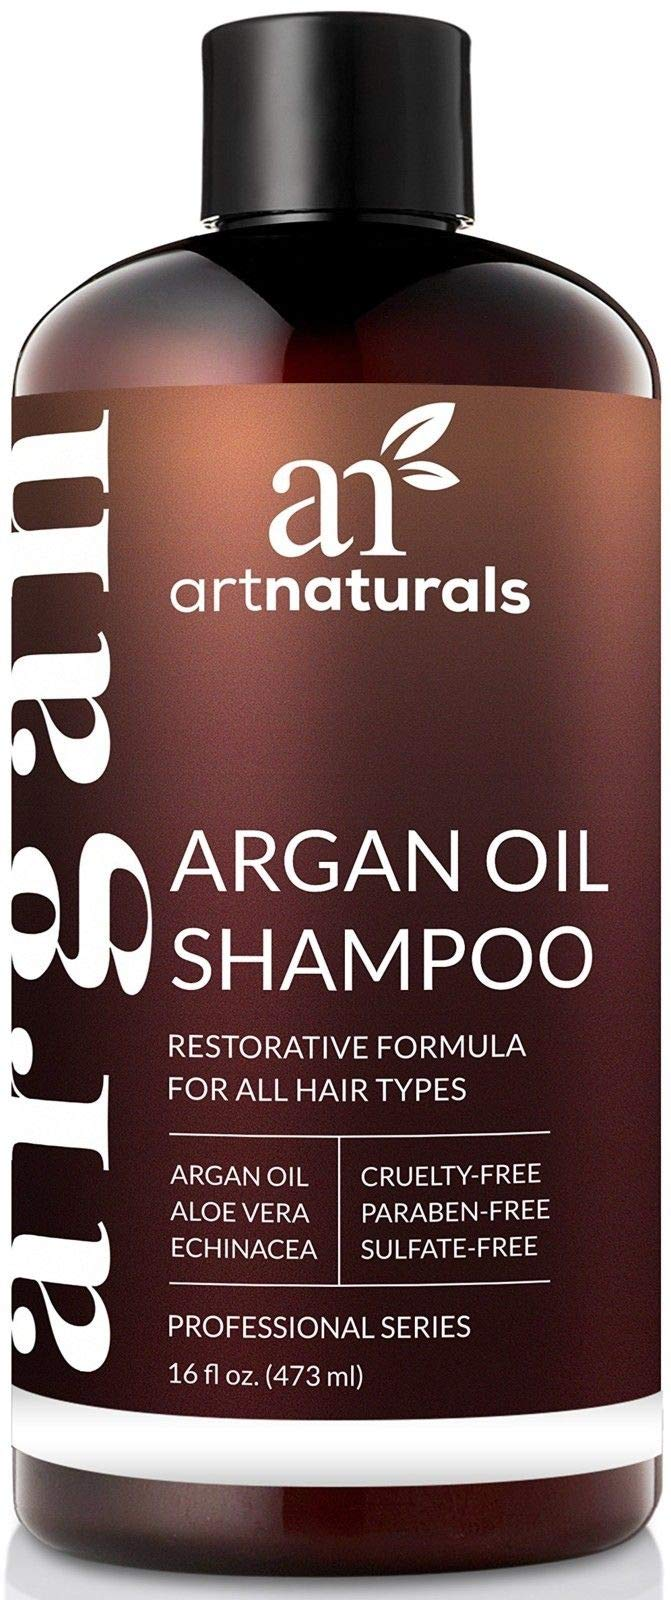 ArtNaturals Moroccan Argan Oil Shampoo - Moisturizing, Volumizing Sulfate Free Shampoo for Women, Men and Teens - Used for Colored and All Hair Types, Anti-Aging Hair Care,(16 Fl Oz / 473ml) -